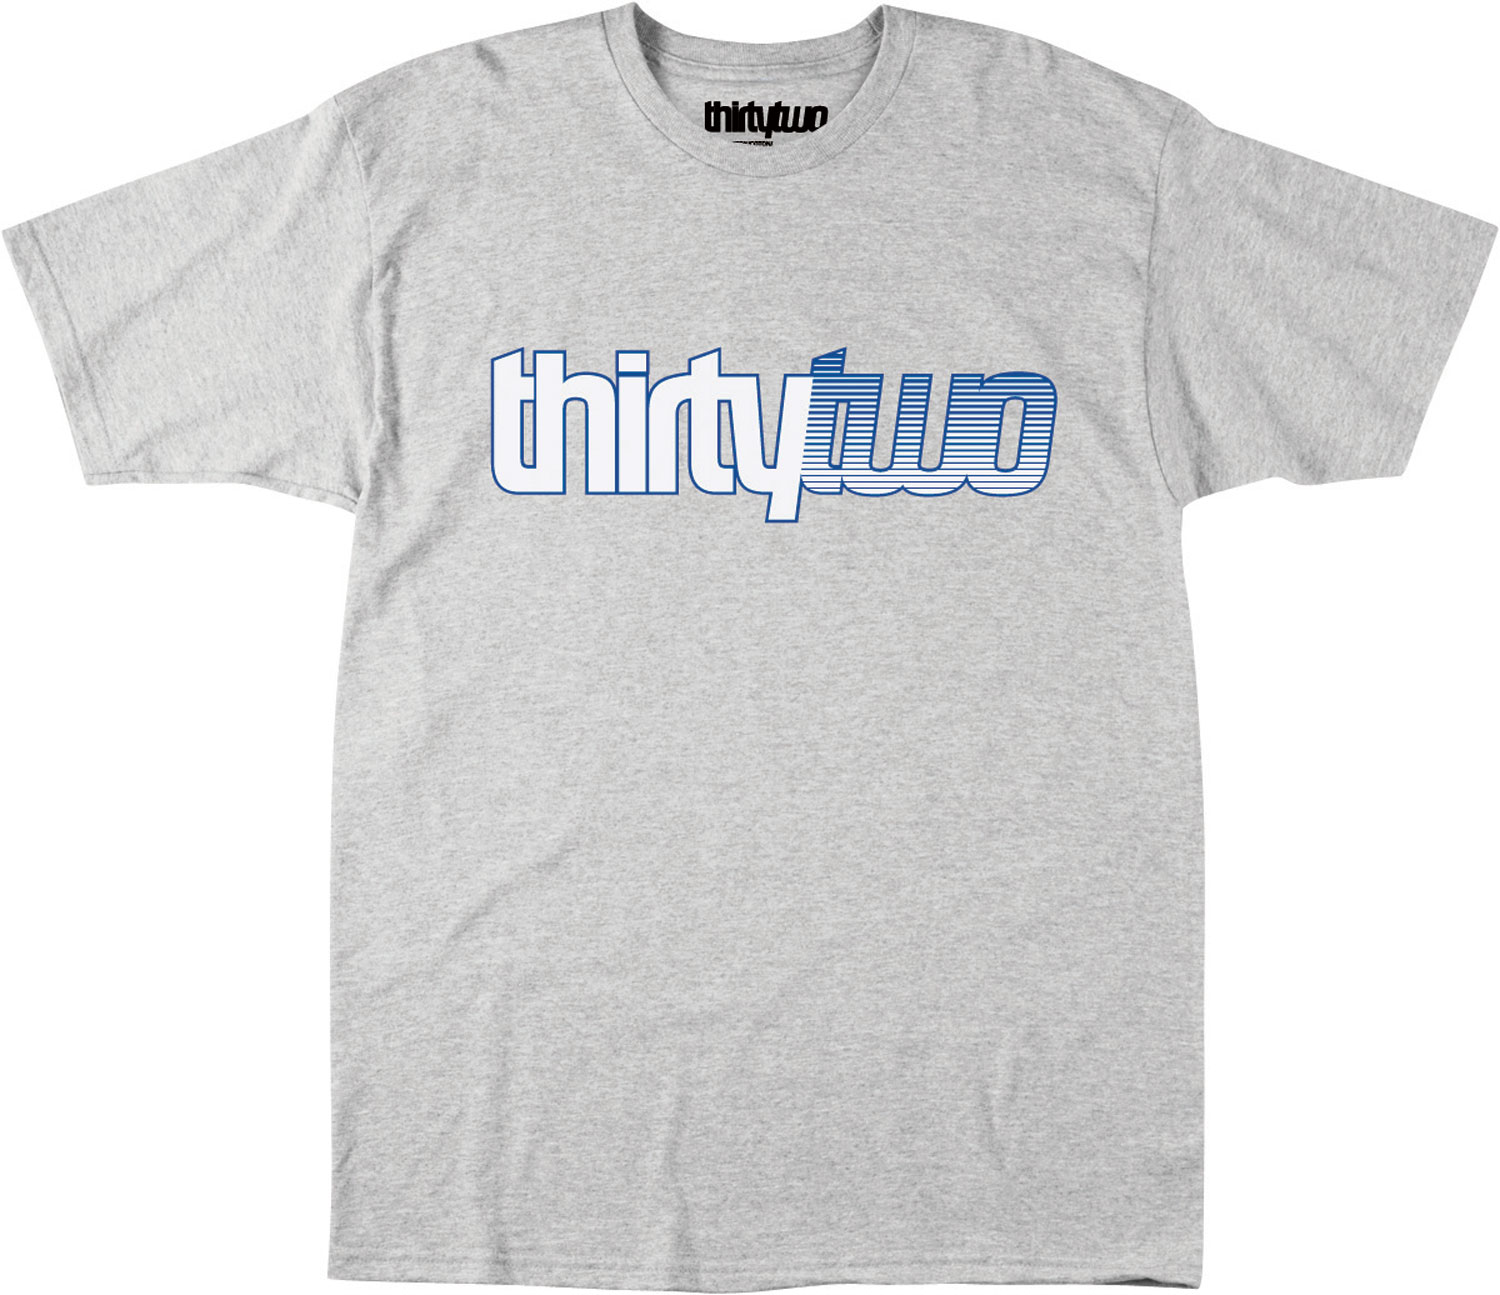 Key Features of the 32 - Thirty Two Doubletone T-Shirt: 100% Cotton Standard Fit Short Sleeve Shirt - $13.95